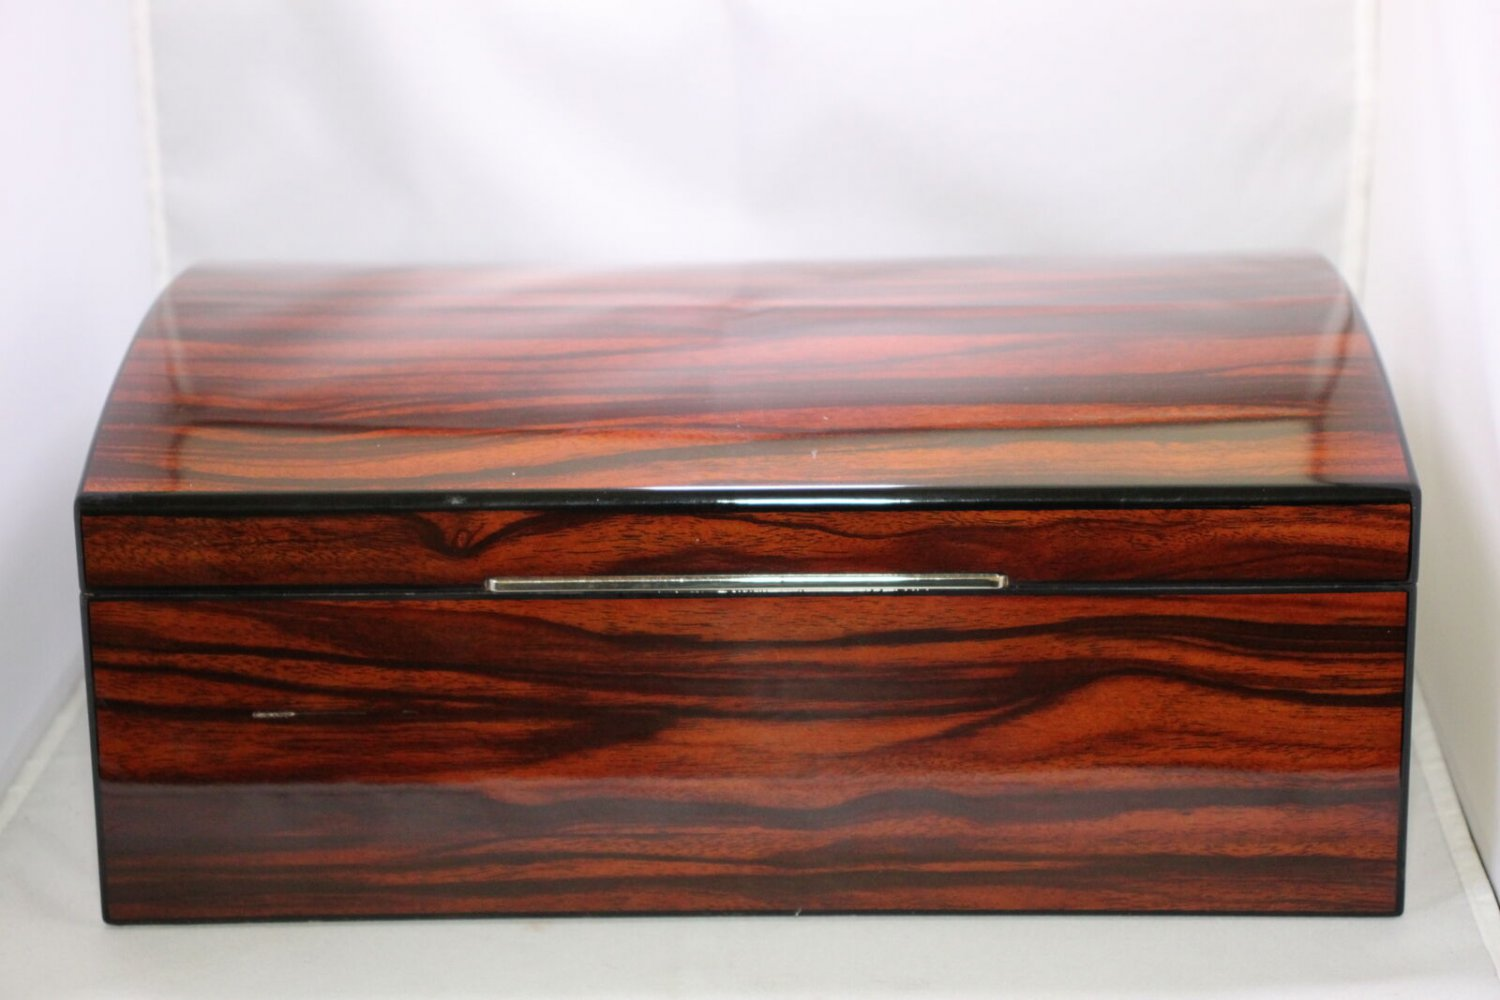 Rosewood Humidor Lined with Cedar SHOWROOM MODEL  FREE SHIPPING IN USA